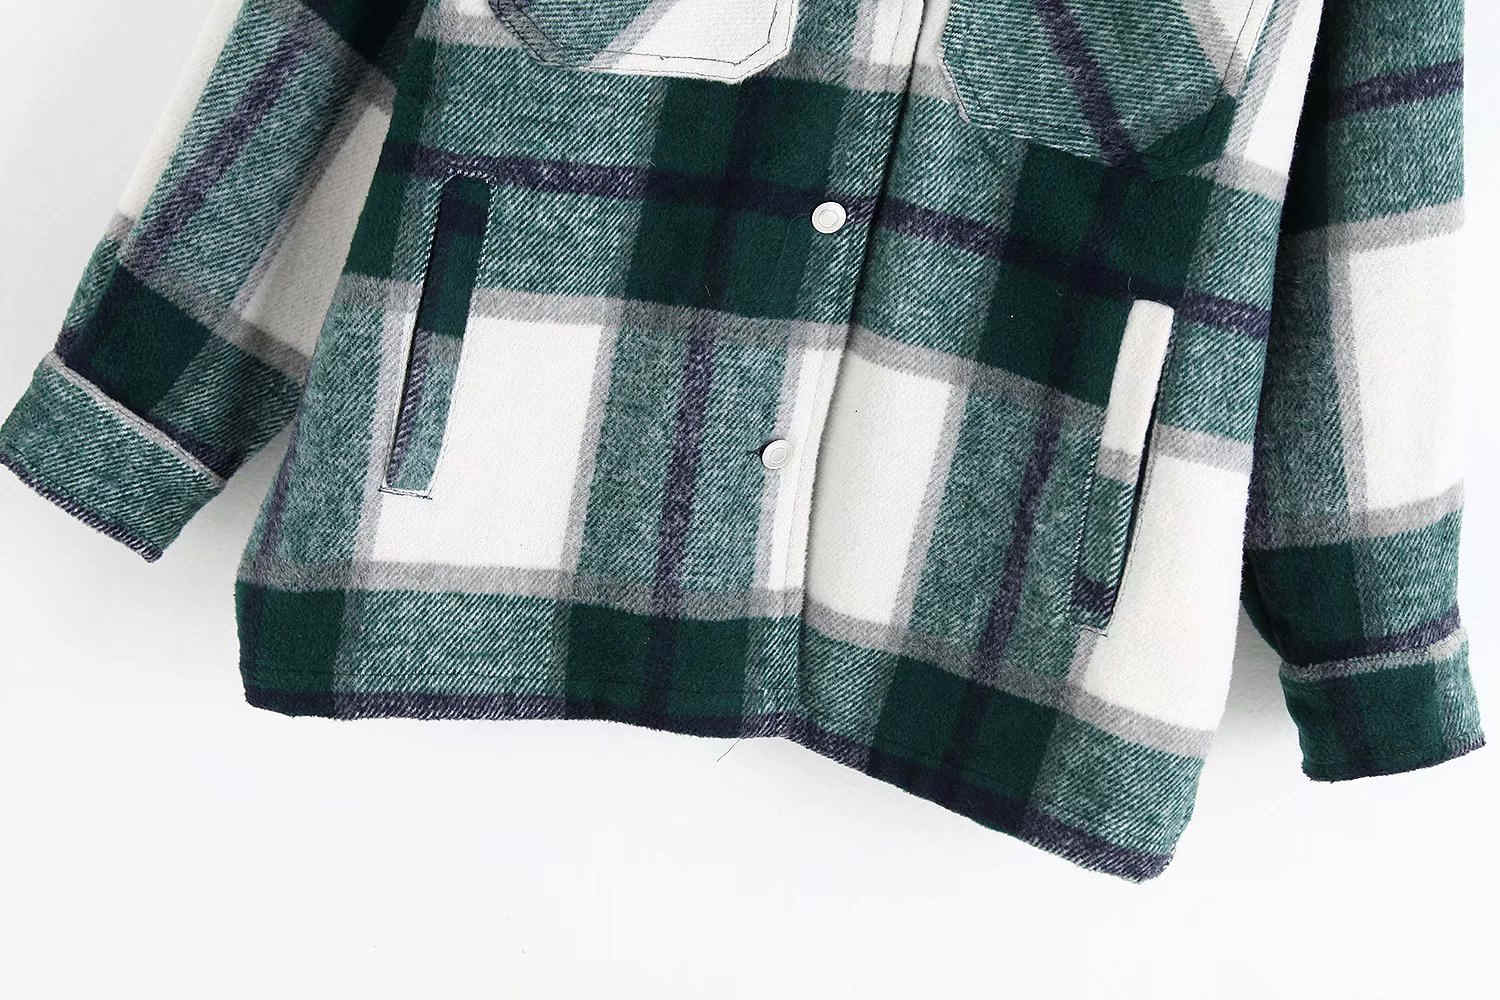 Hab42fc0c21d2449799a23beda10a30b7m Vintage Stylish Pockets Oversized Plaid Jacket Coat Women 2019 Fashion Lapel Collar Long Sleeve Loose Outerwear Chic Tops